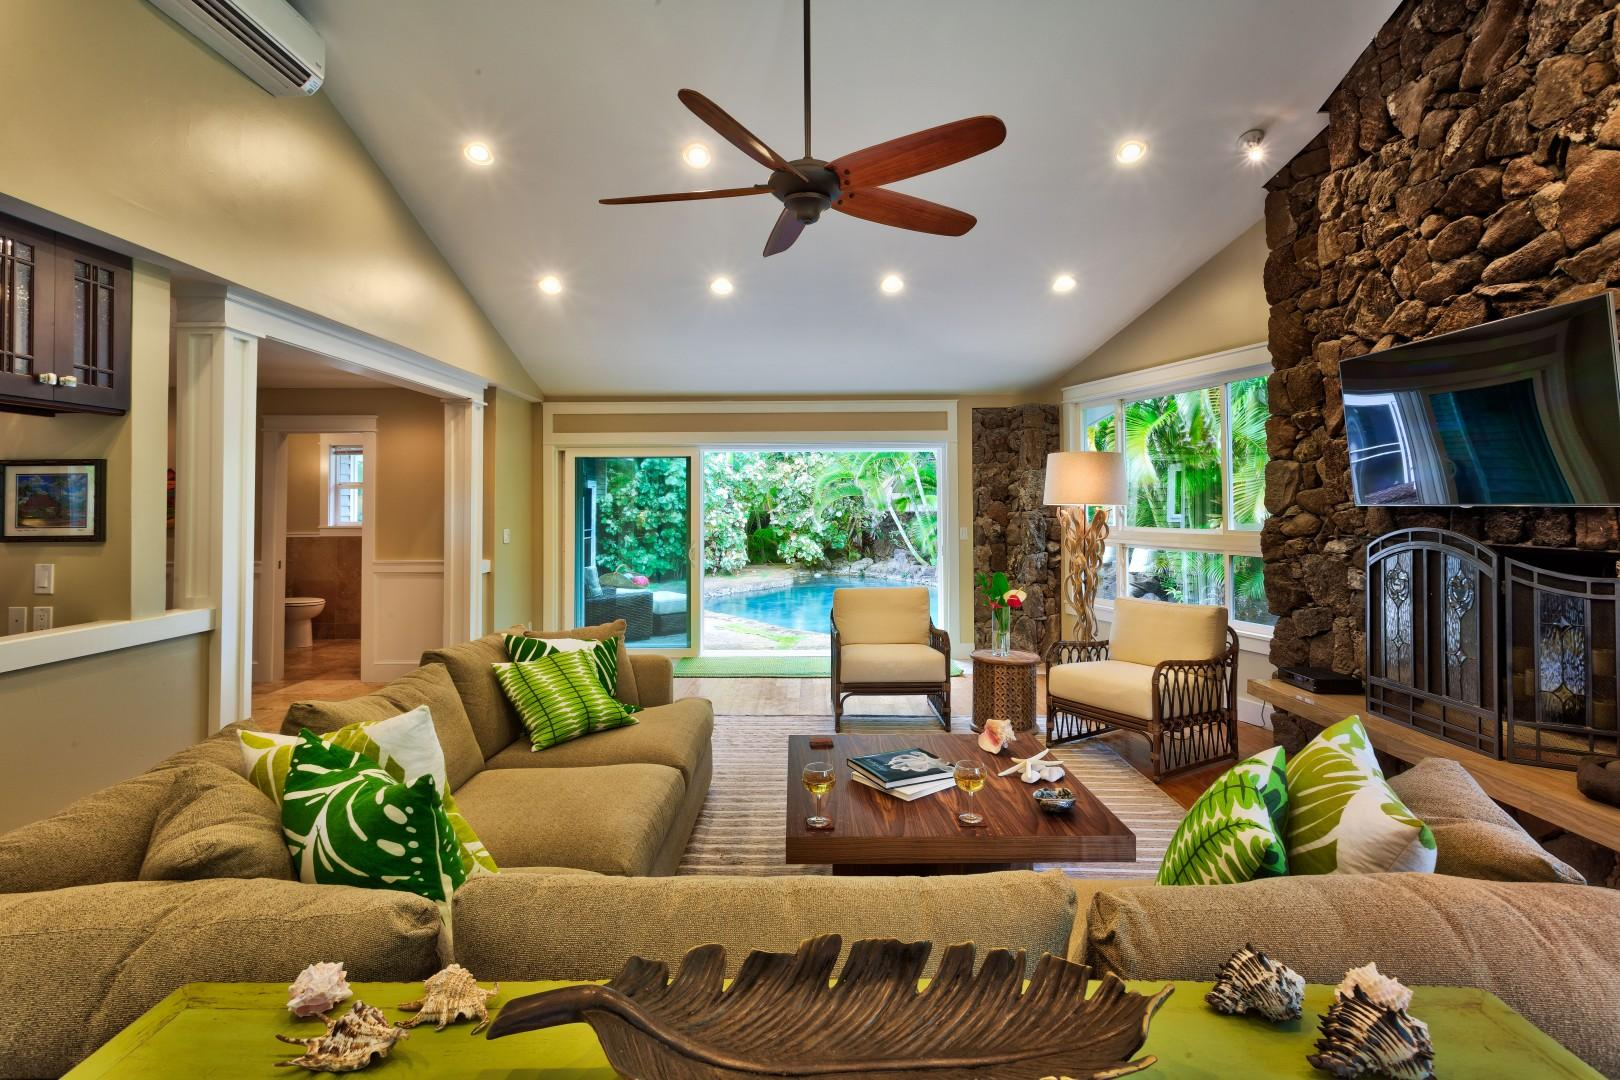 Cozy up in the living area, which is between the pool, kitchen and barbecue areas - central to all of the action!